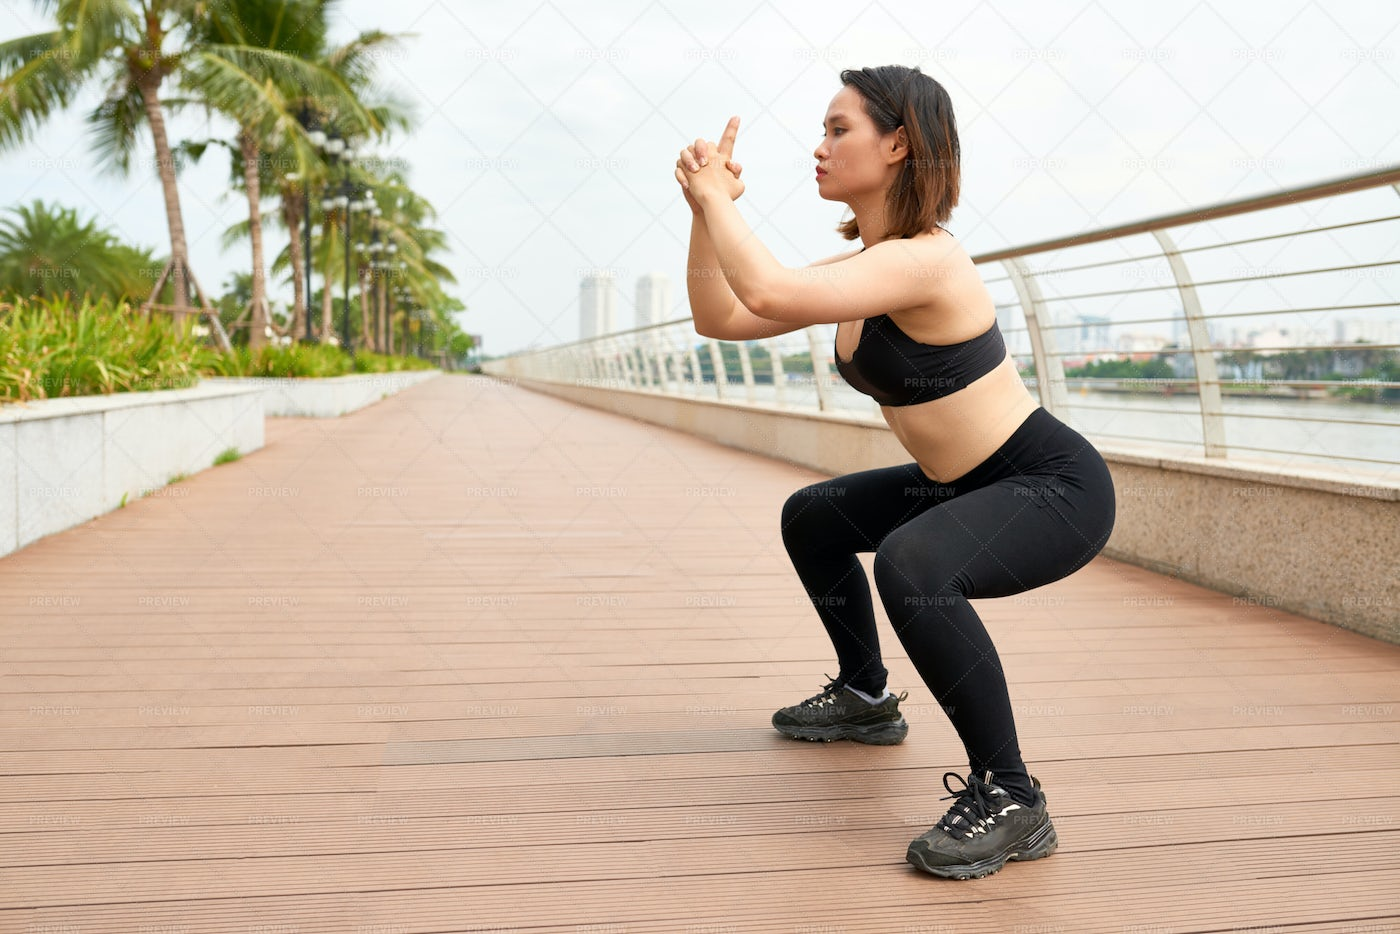 Sportive Woman Working Out On Street: Stock Photos